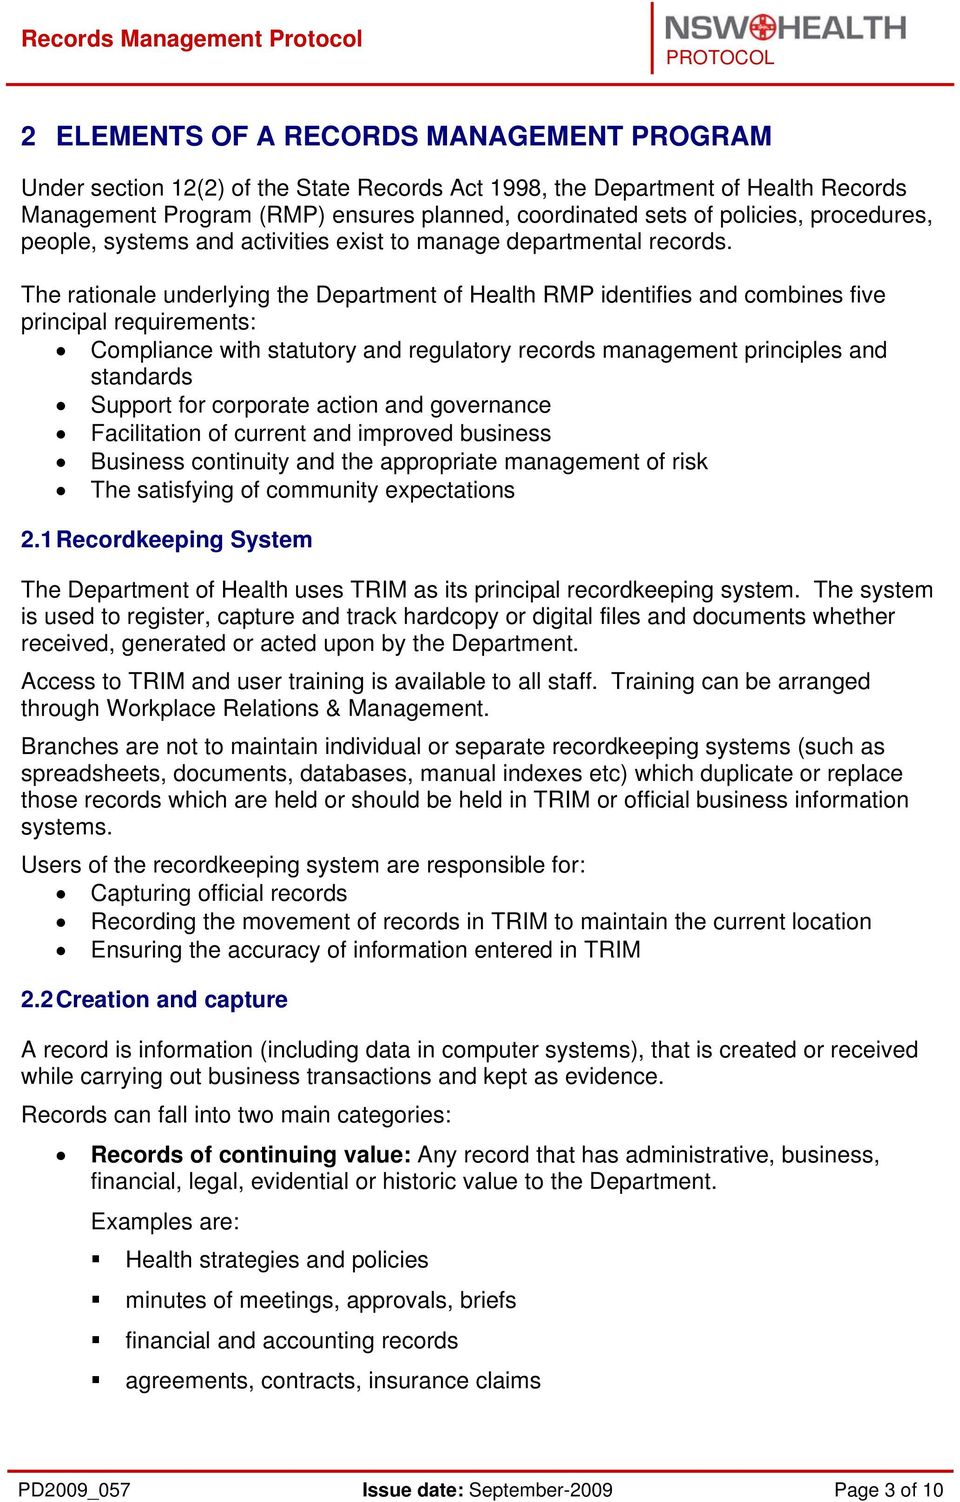 The rationale underlying the Department of Health RMP identifies and combines five principal requirements: Compliance with statutory and regulatory records management principles and standards Support